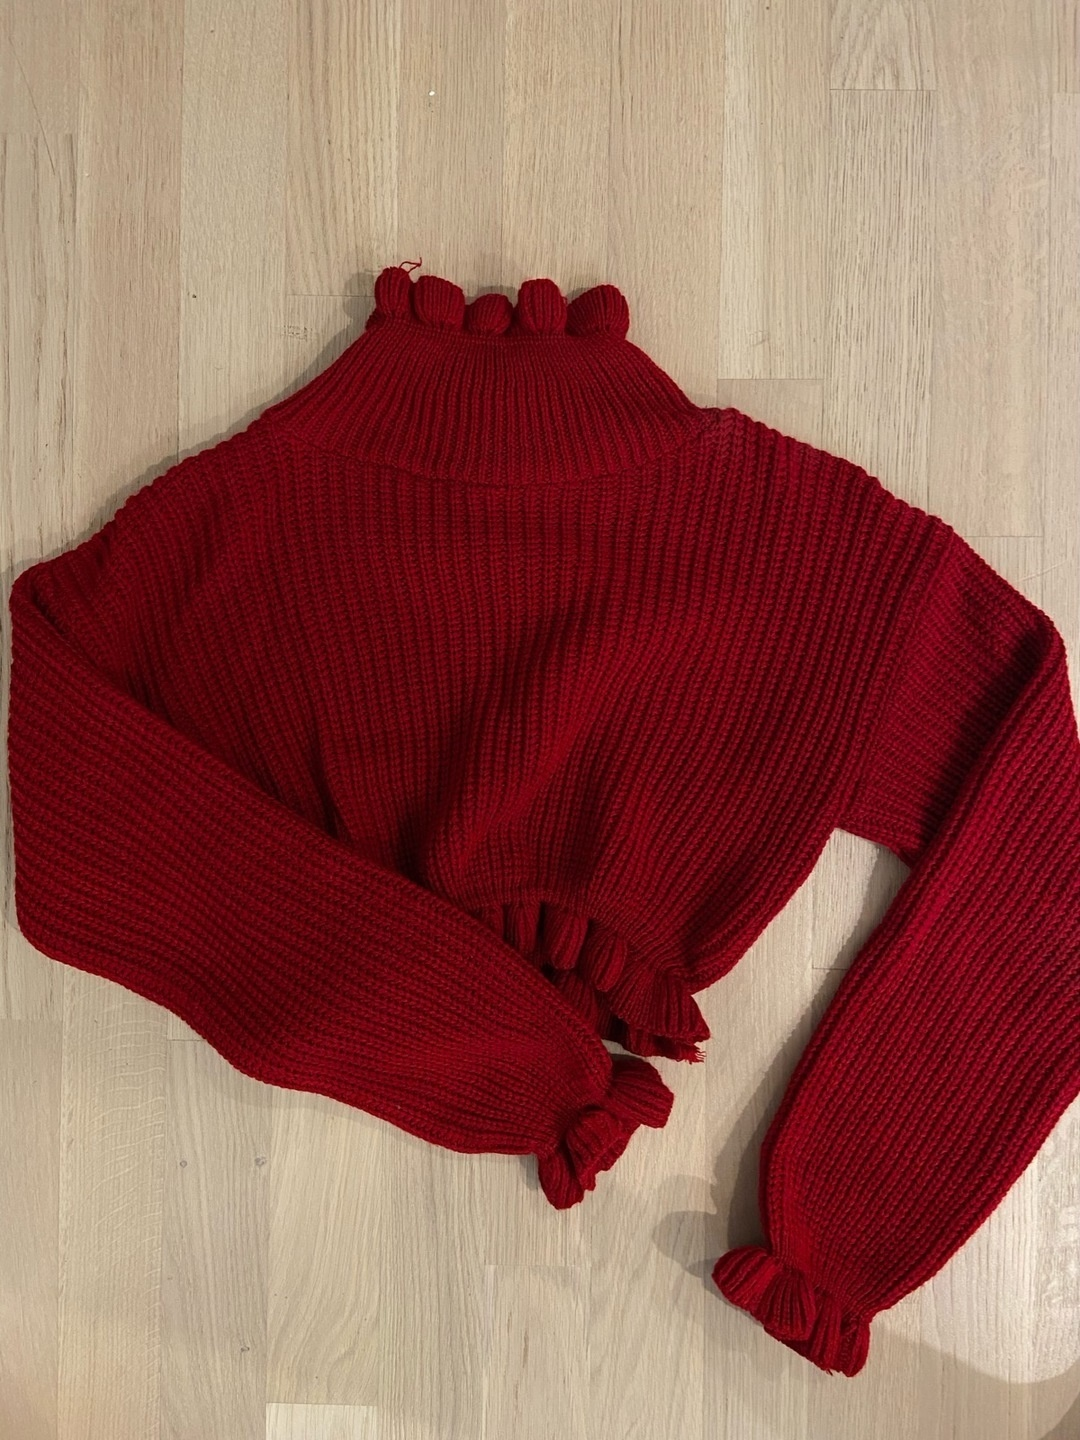 Women's jumpers & cardigans - REBELLIOUS FASHION photo 2